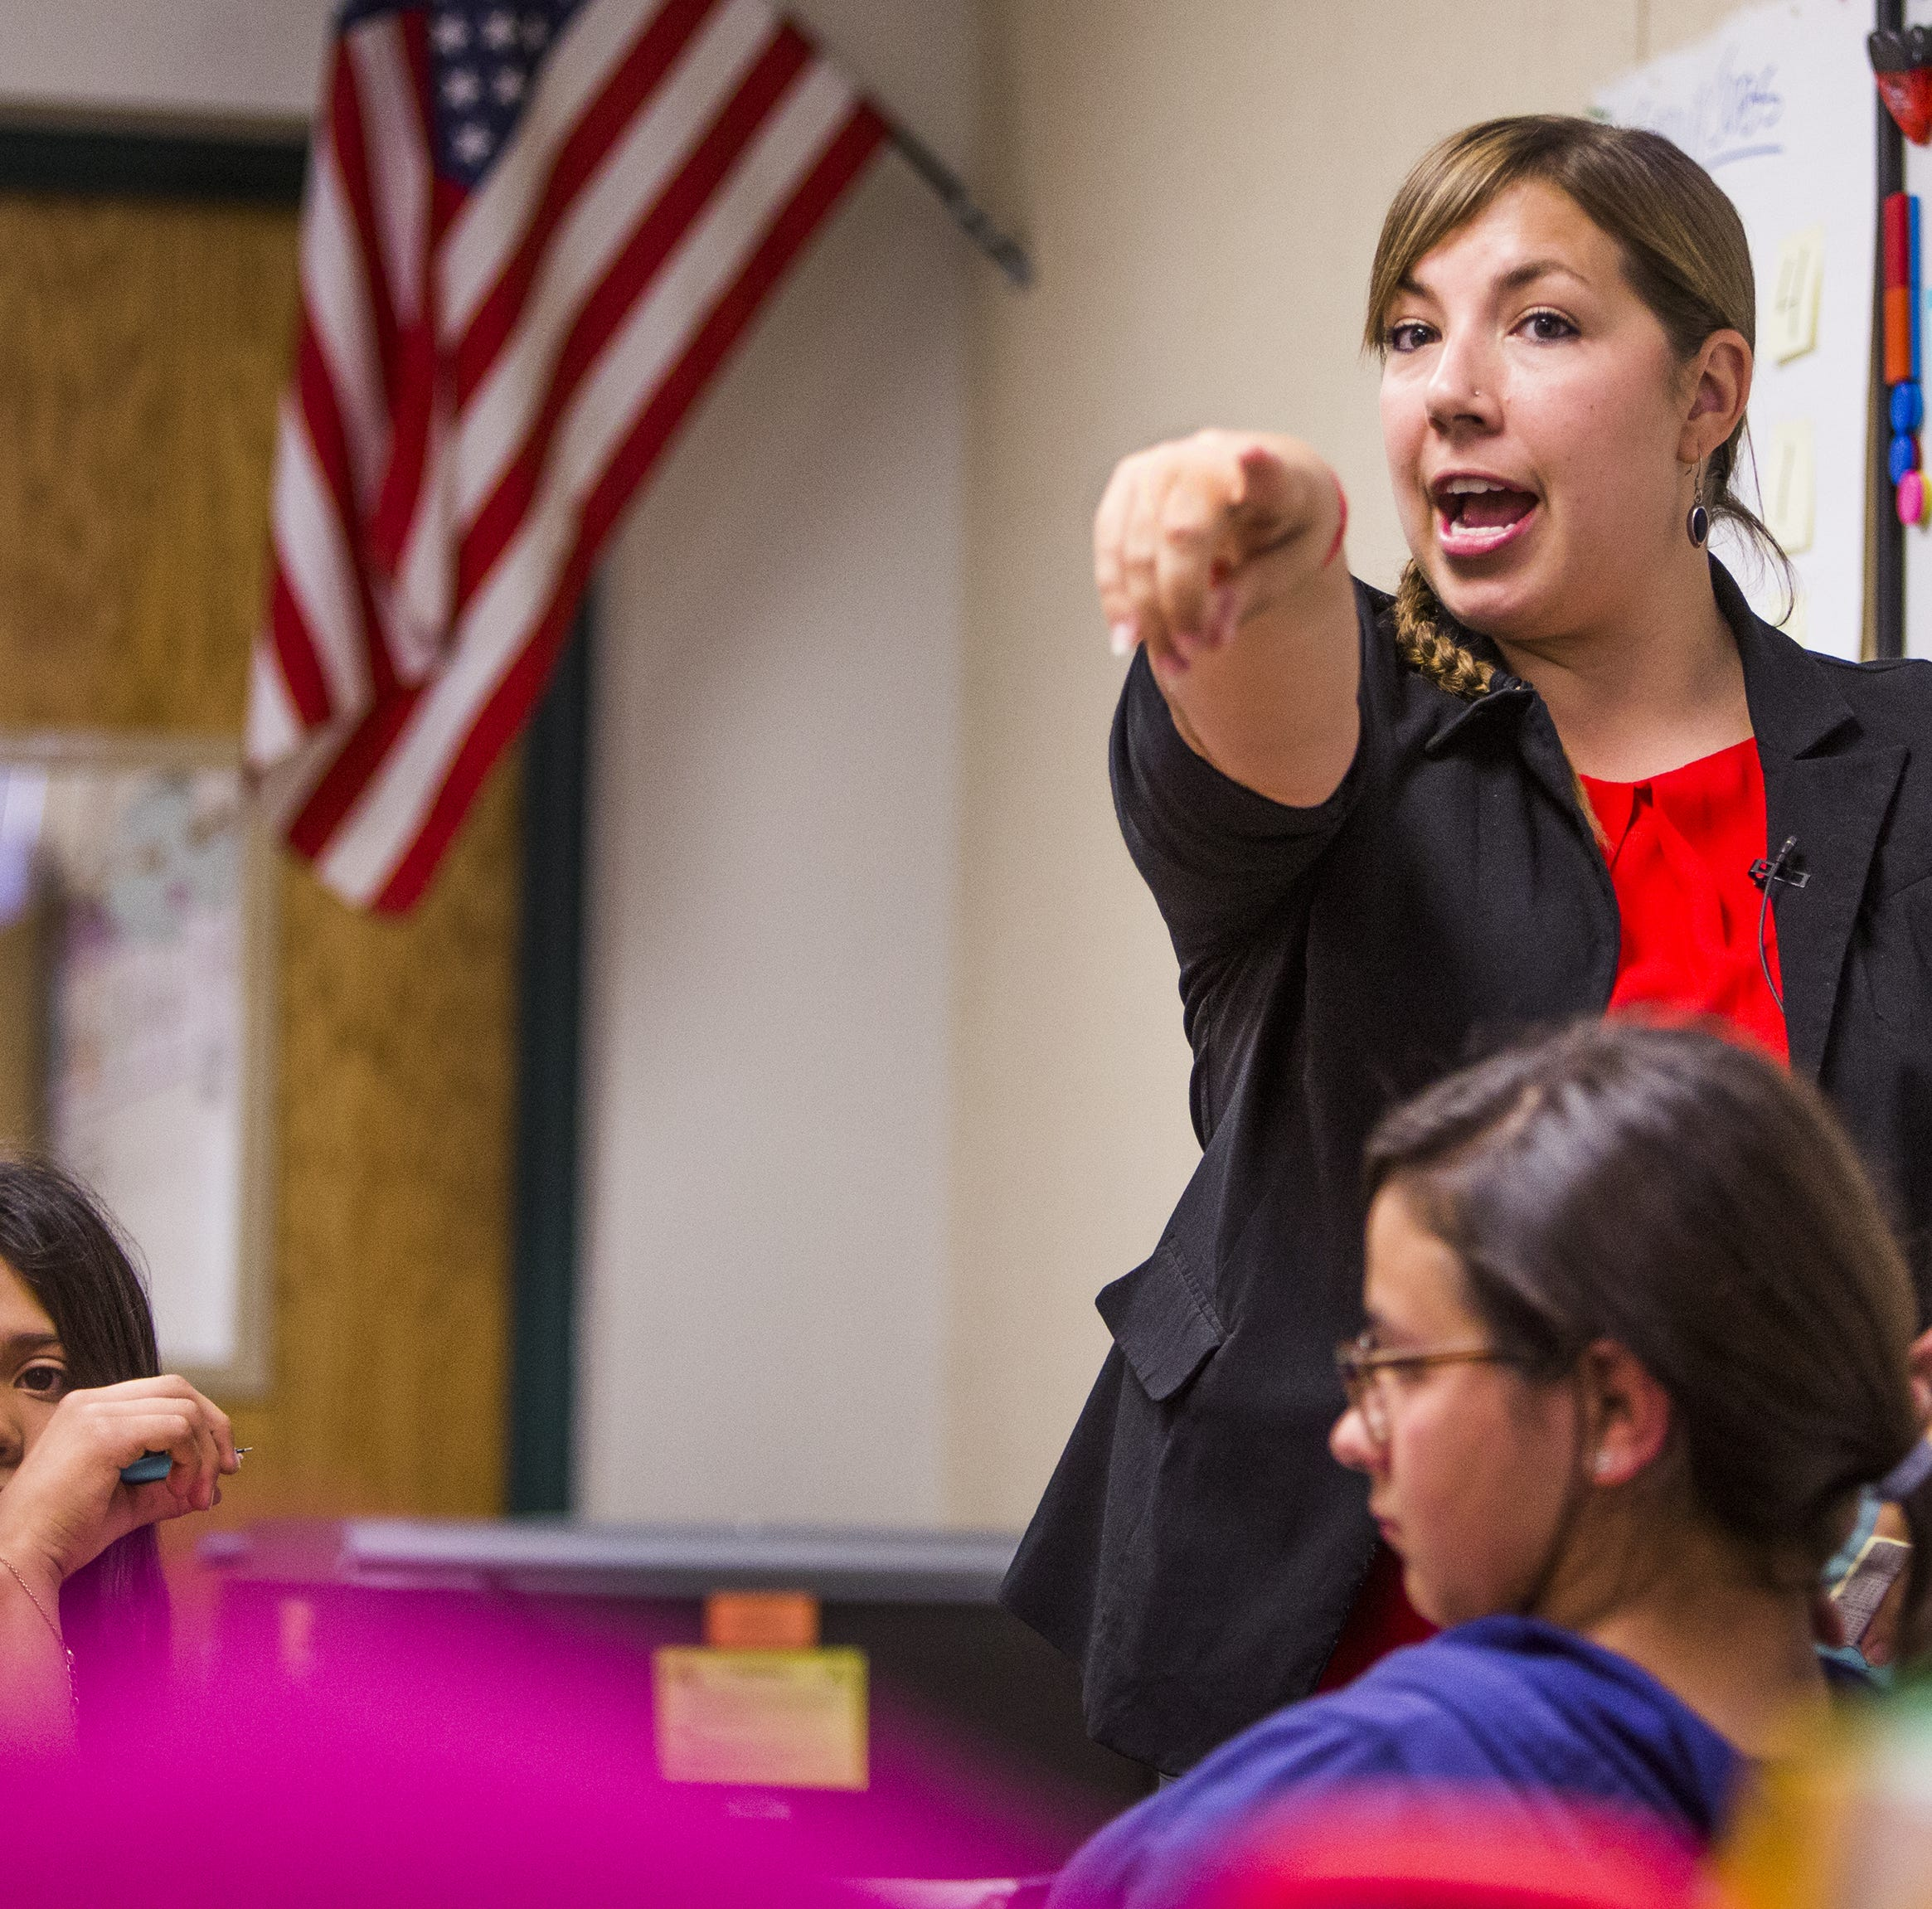 'I'm tired': Phoenix teacher fights to lead her classroom and #RedForEd